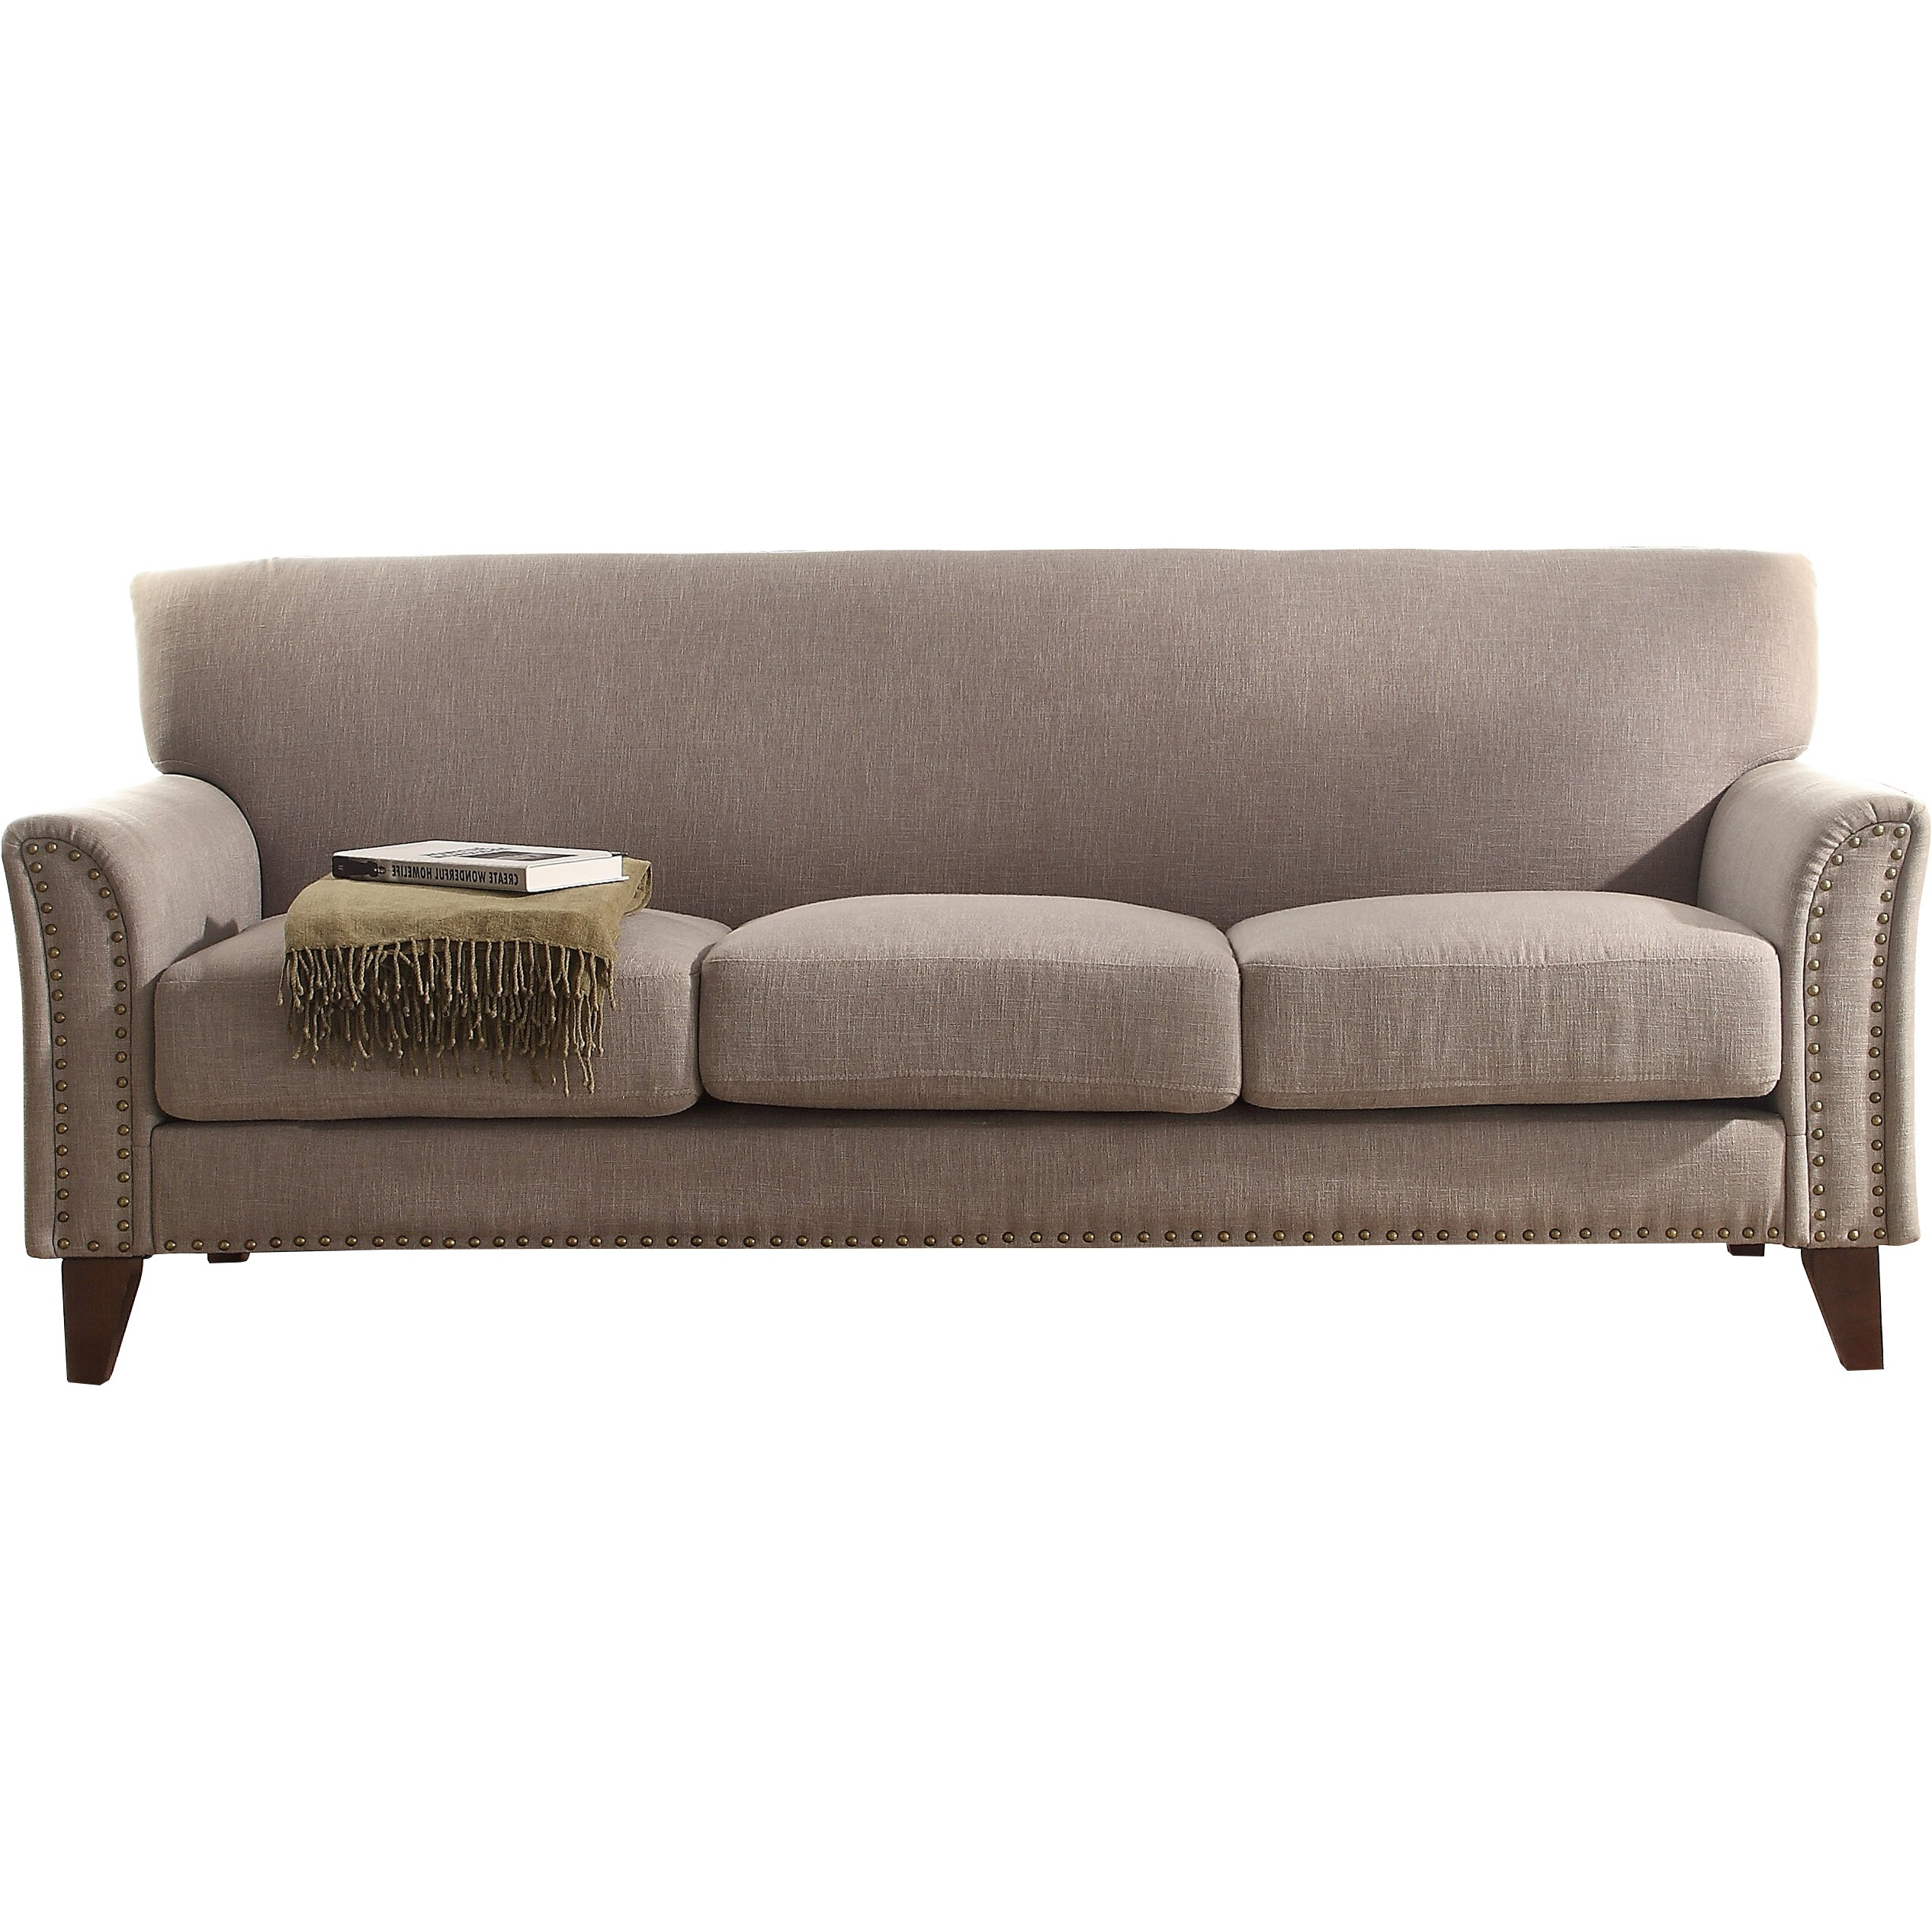 Laurel Gray Sofas Pertaining To Most Current Laurel Foundry Modern Farmhouse Adoria Sofa & Reviews (View 15 of 20)